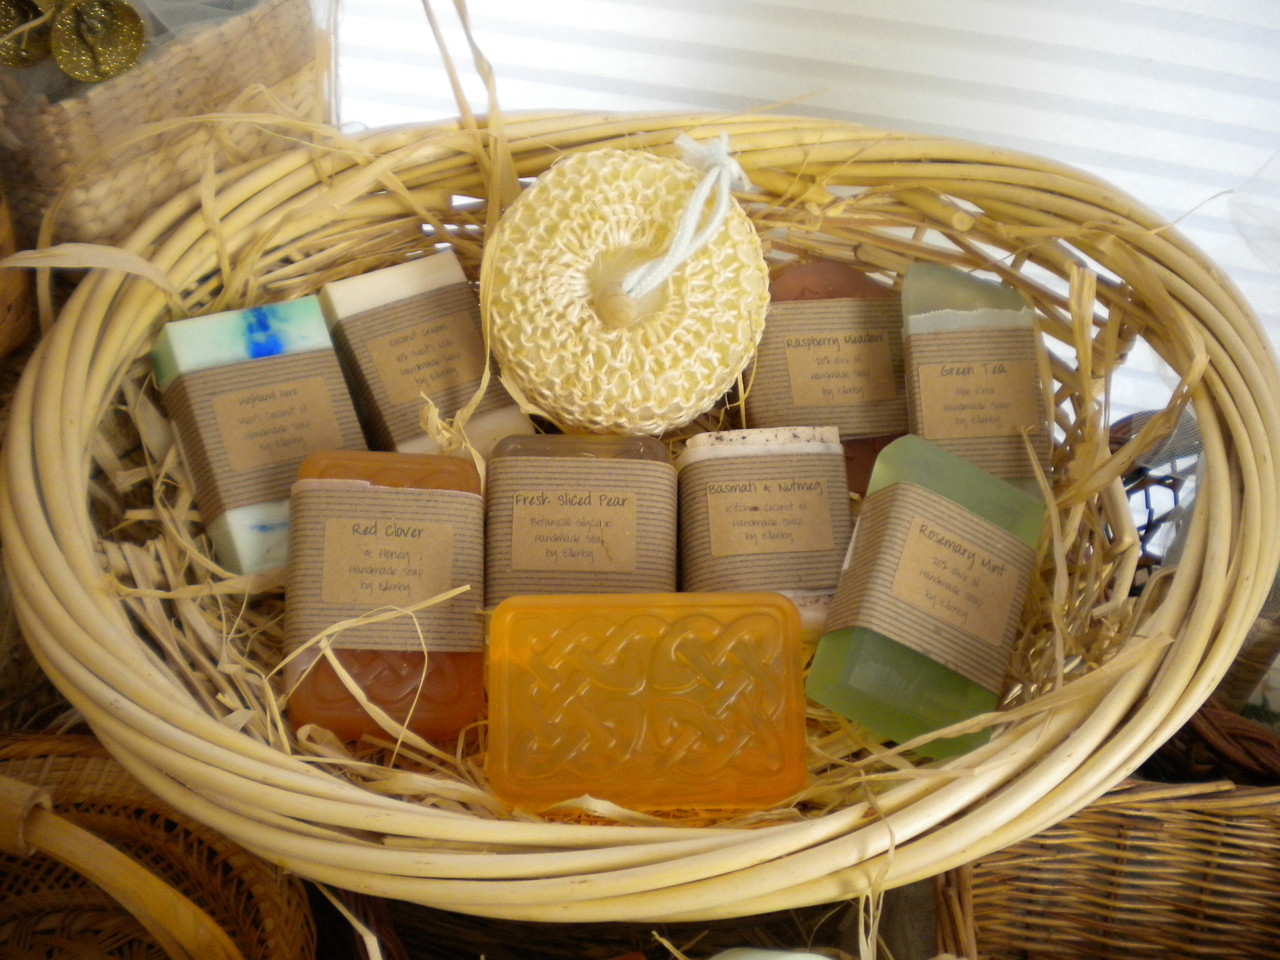 Handmade Soap Baskets : Ellenby gift baskets handmade